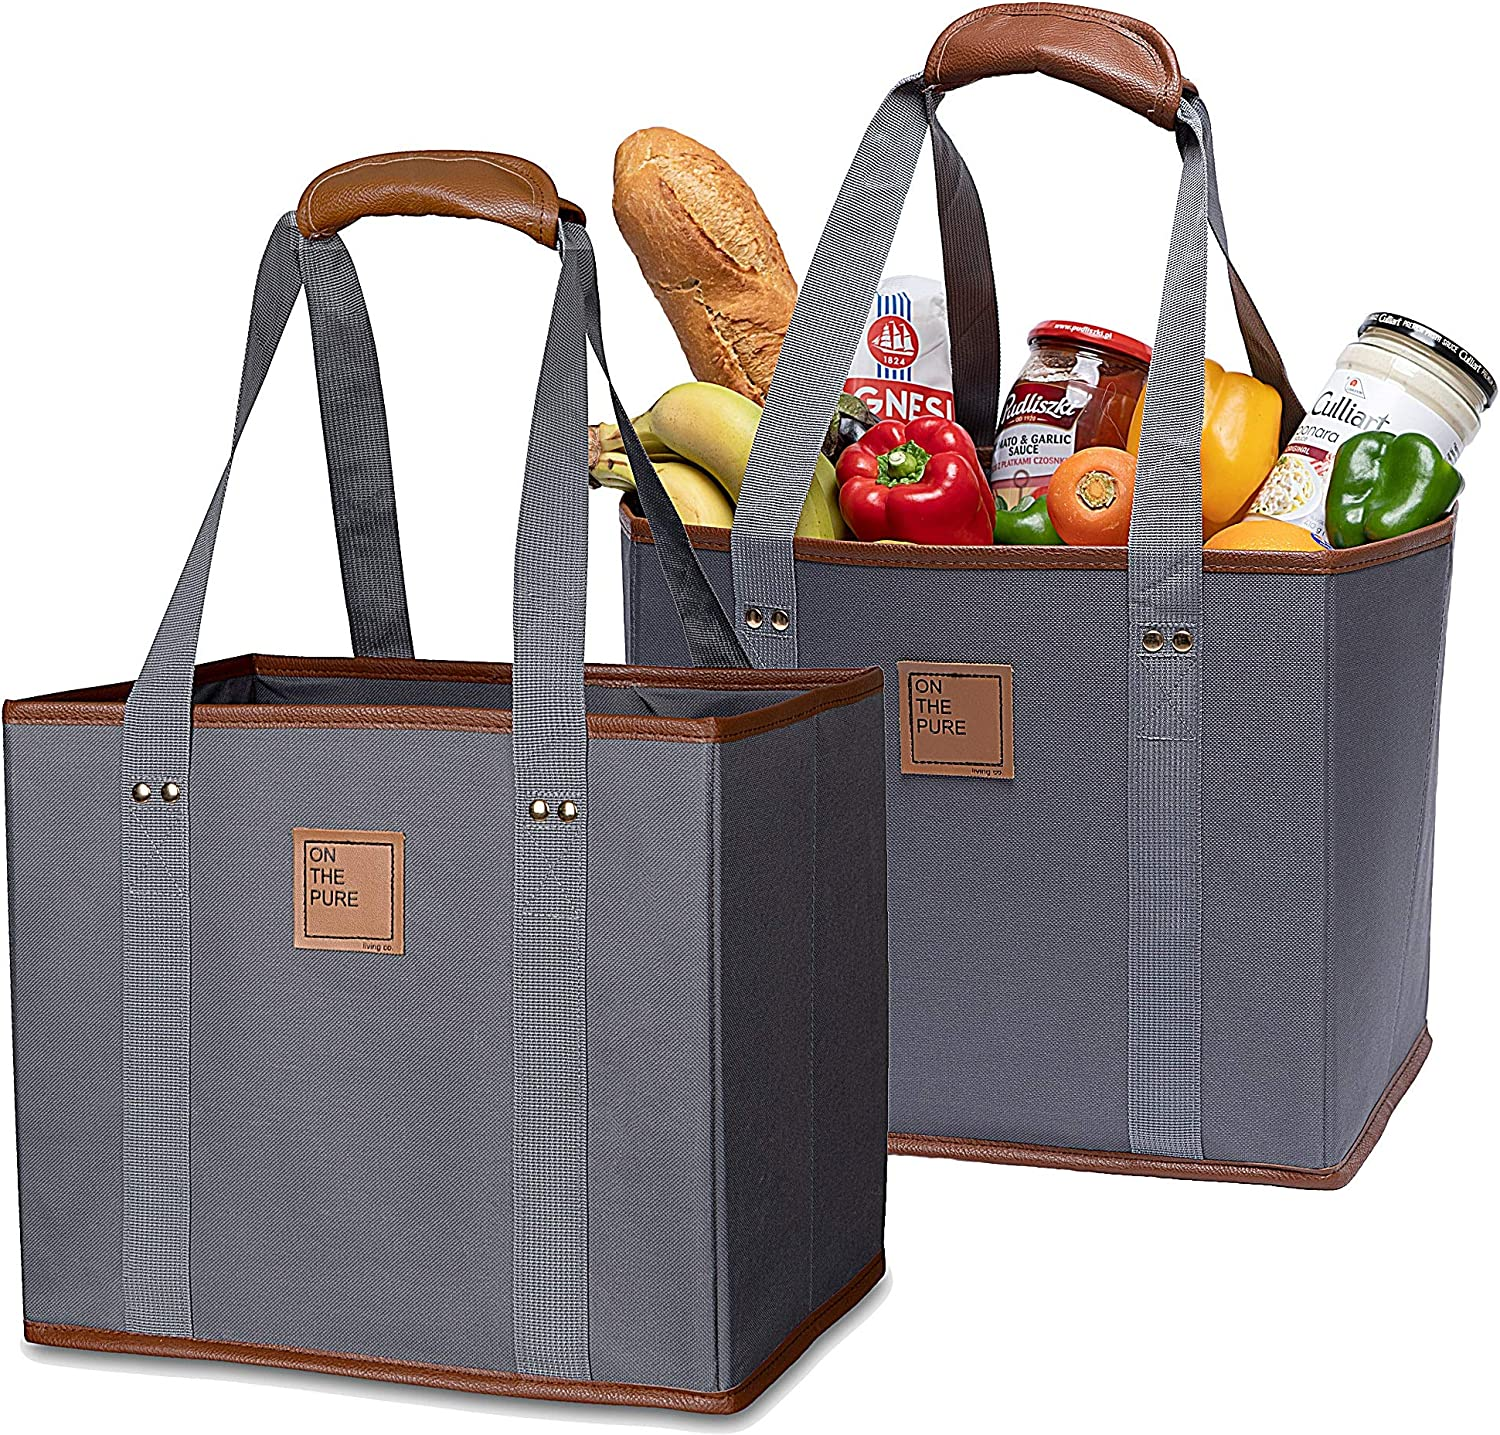 Premium Reusable Grocery Shopping Tote Box Bags(Set of 2, Gray)–Waterproof, Cotton+ material, Leather insert, Durable, Organizer, Collapsible, Foldable, Heavy Duty, Large, Reinforced Sides and Bottom